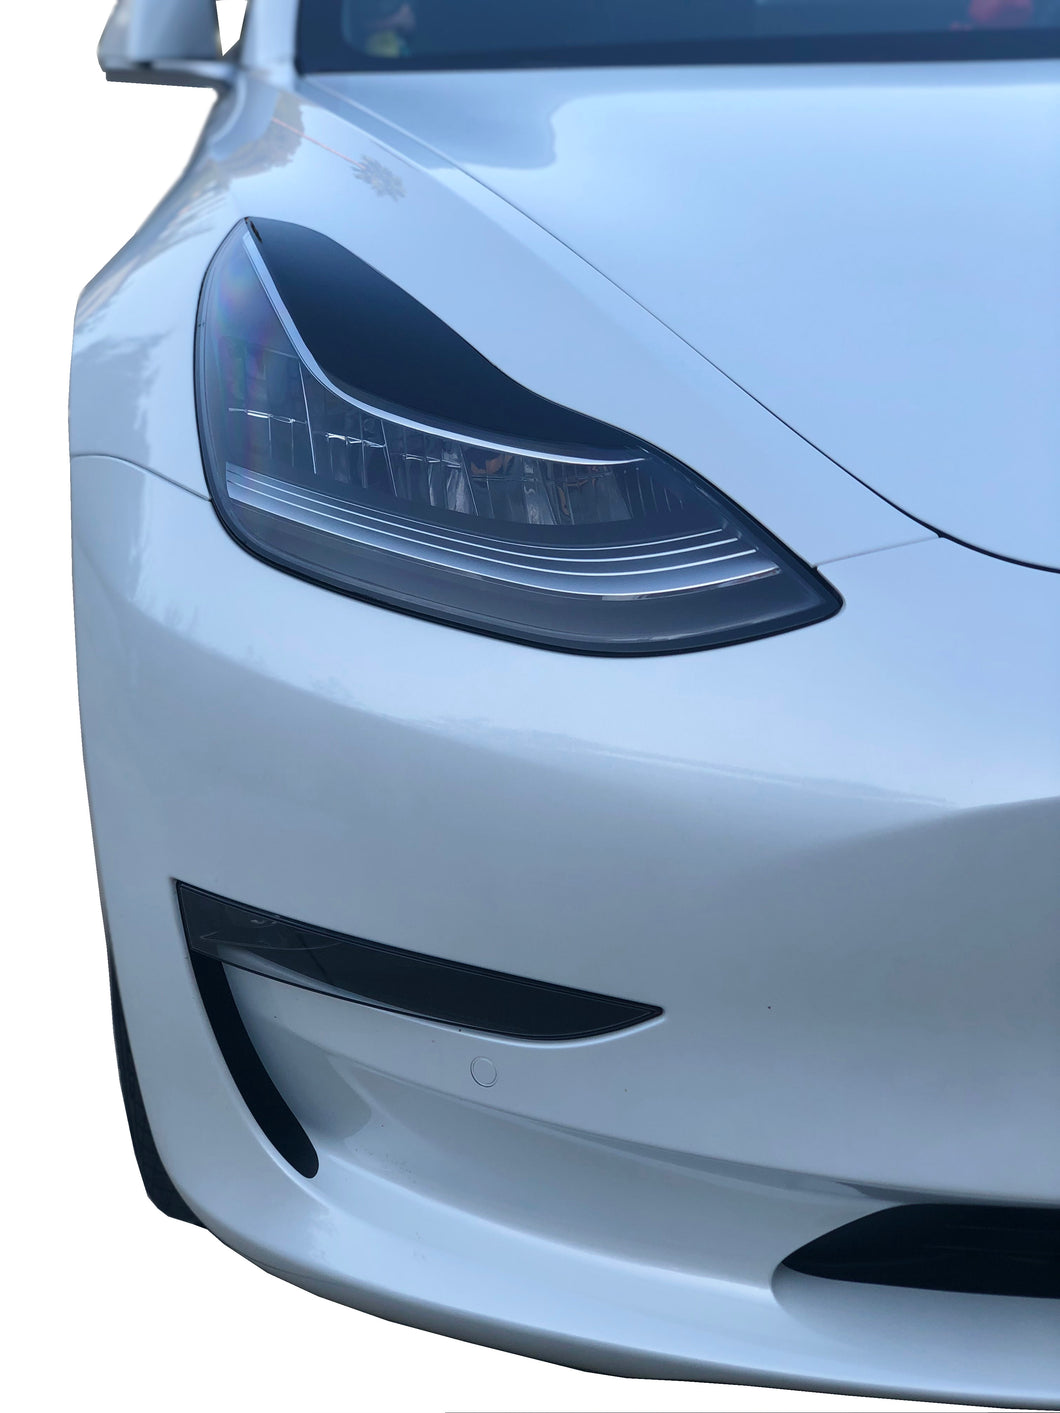 Tesla Model 3 Headlight Black Gloss Smoked Vinyl Film Covers Eyebrow Overlay Pair